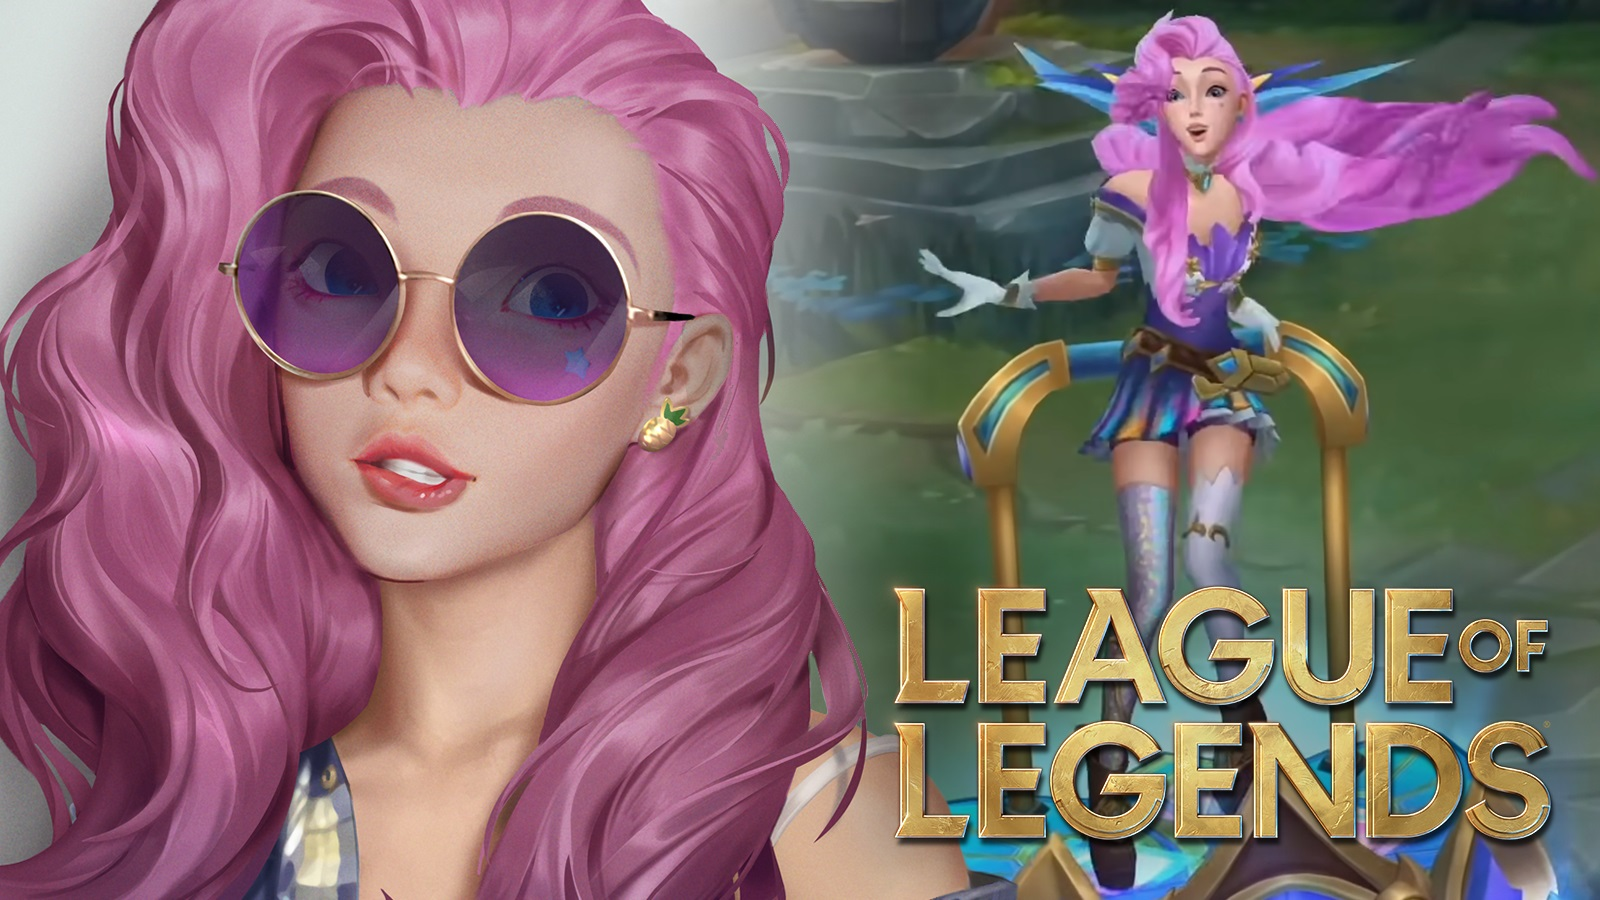 Seraphine selfie in front of in-game League of Legends model.